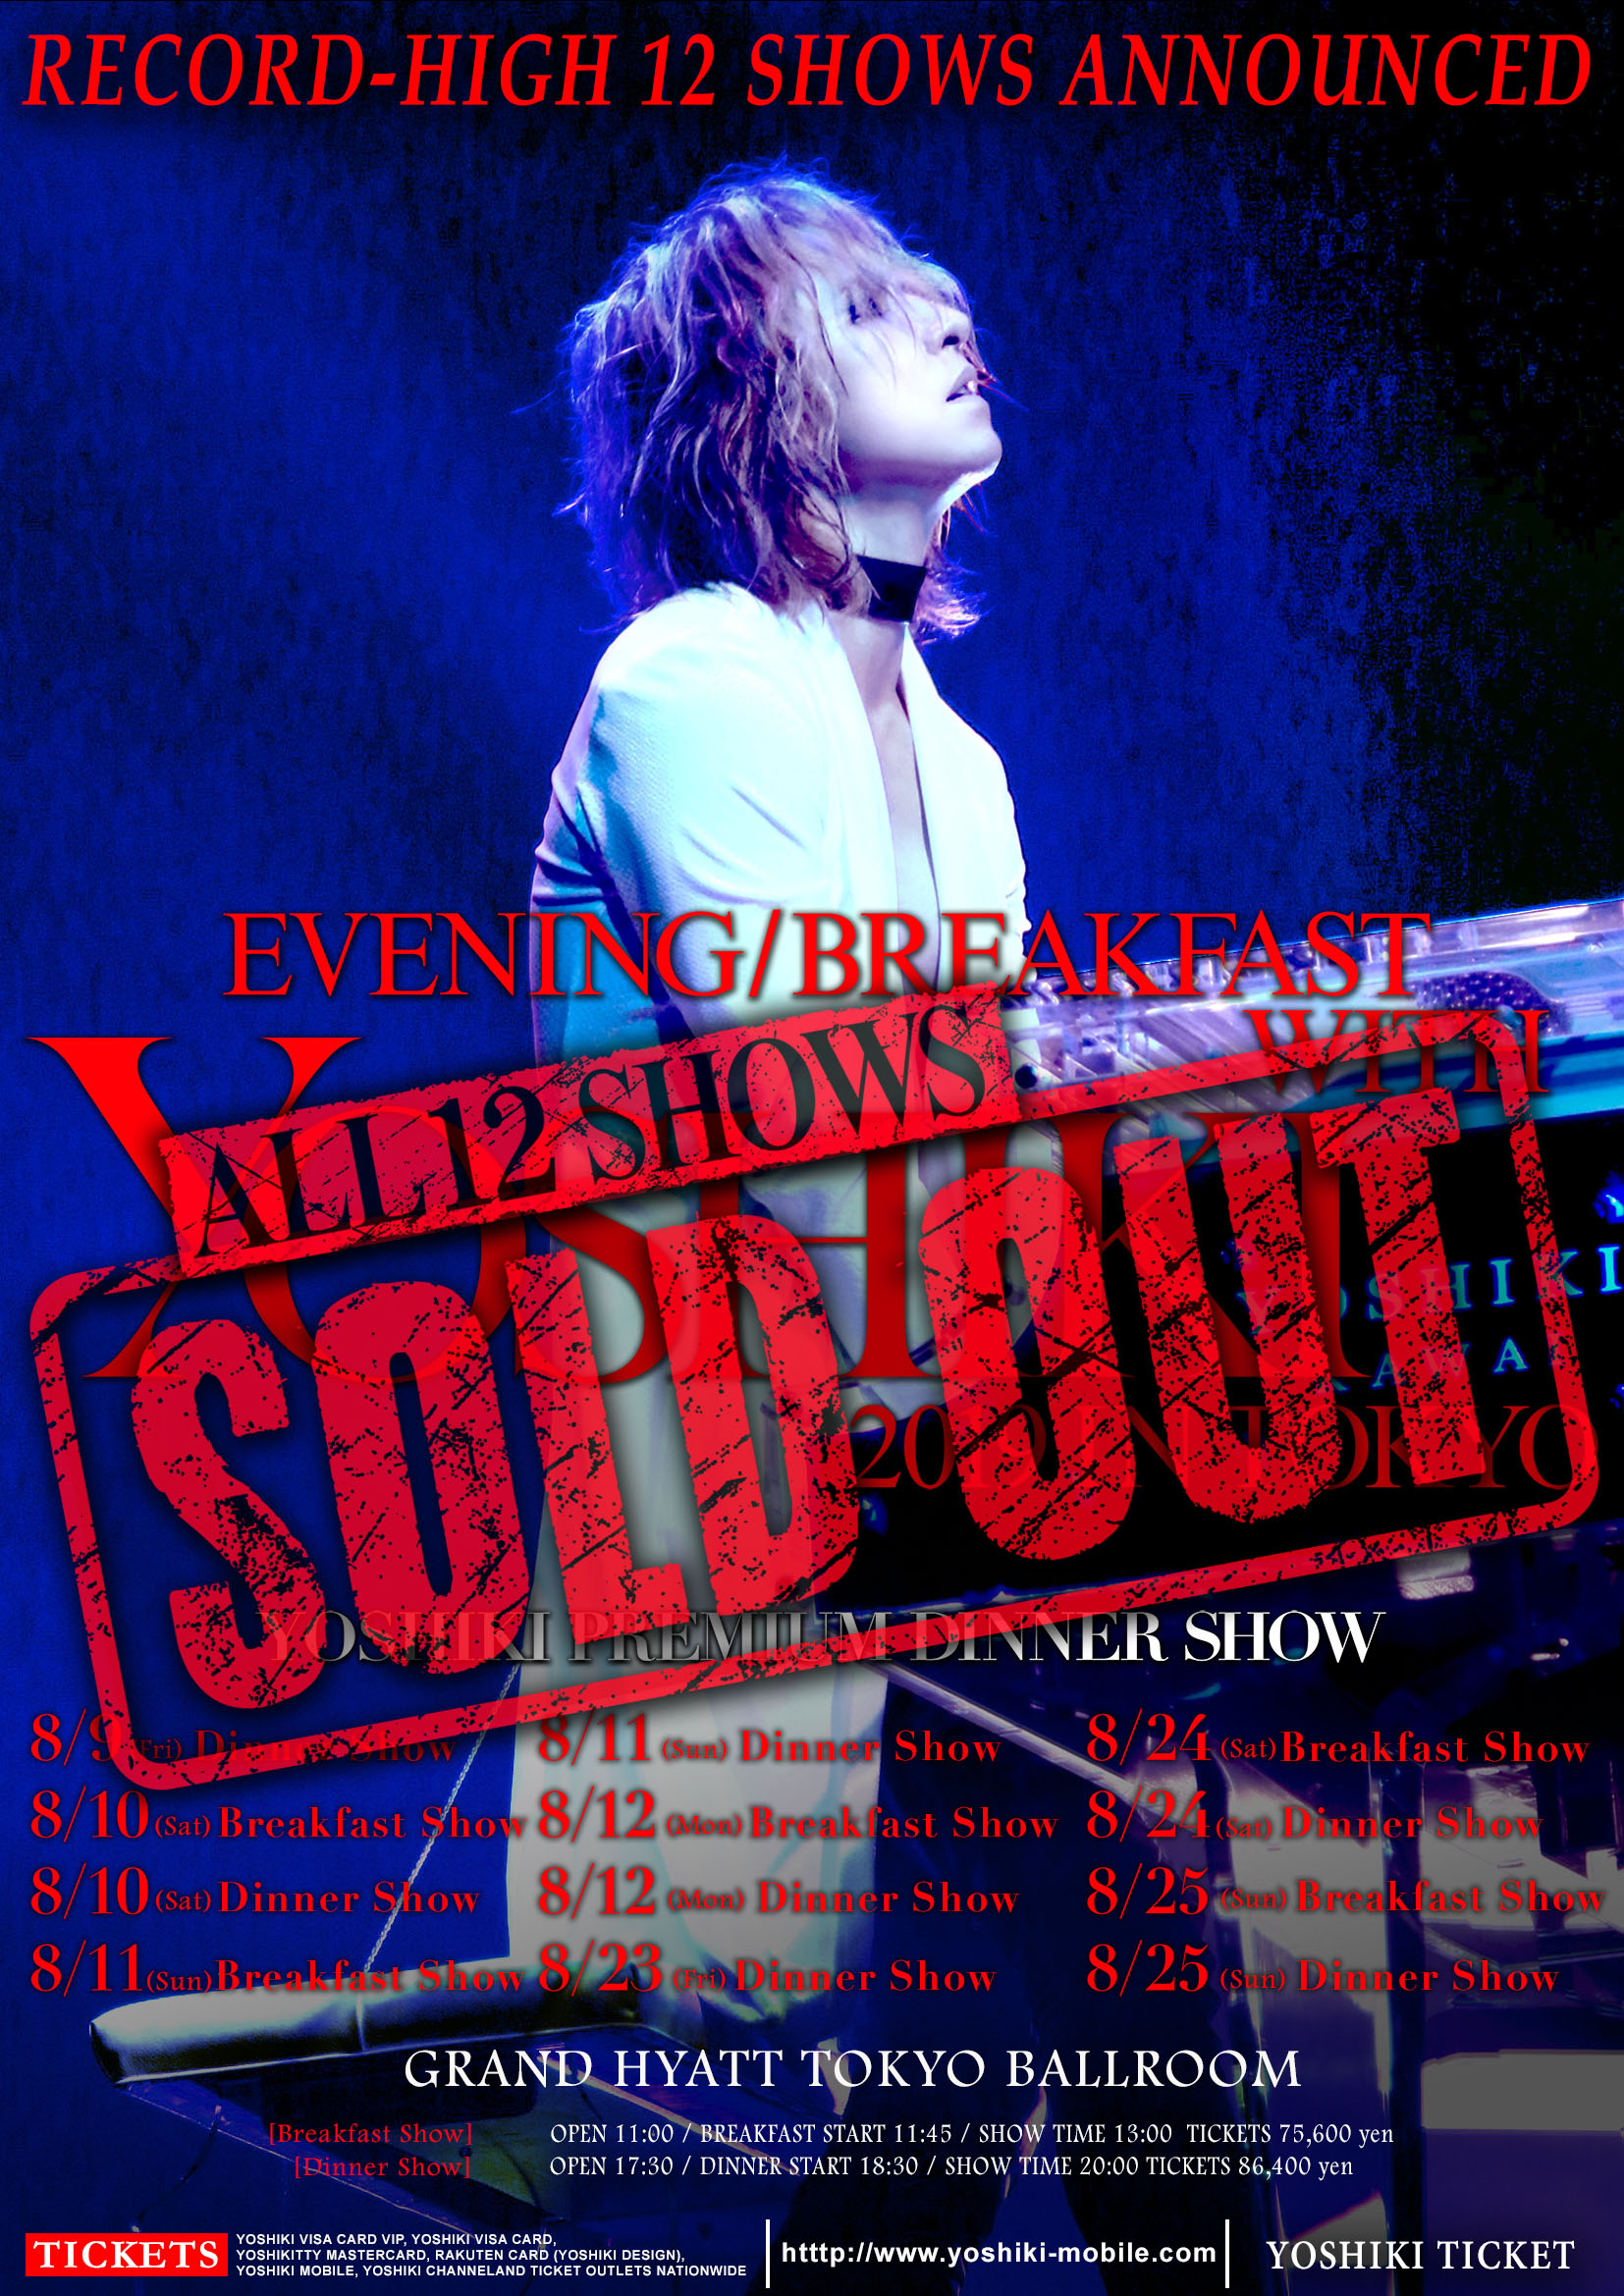 e503026c1 NEWS: YOSHIKI WILL RETURN TO THE UK FOR GUEST APPEARANCE WITH SARAH  BRIGHTMAN AT ROYAL ALBERT HALL